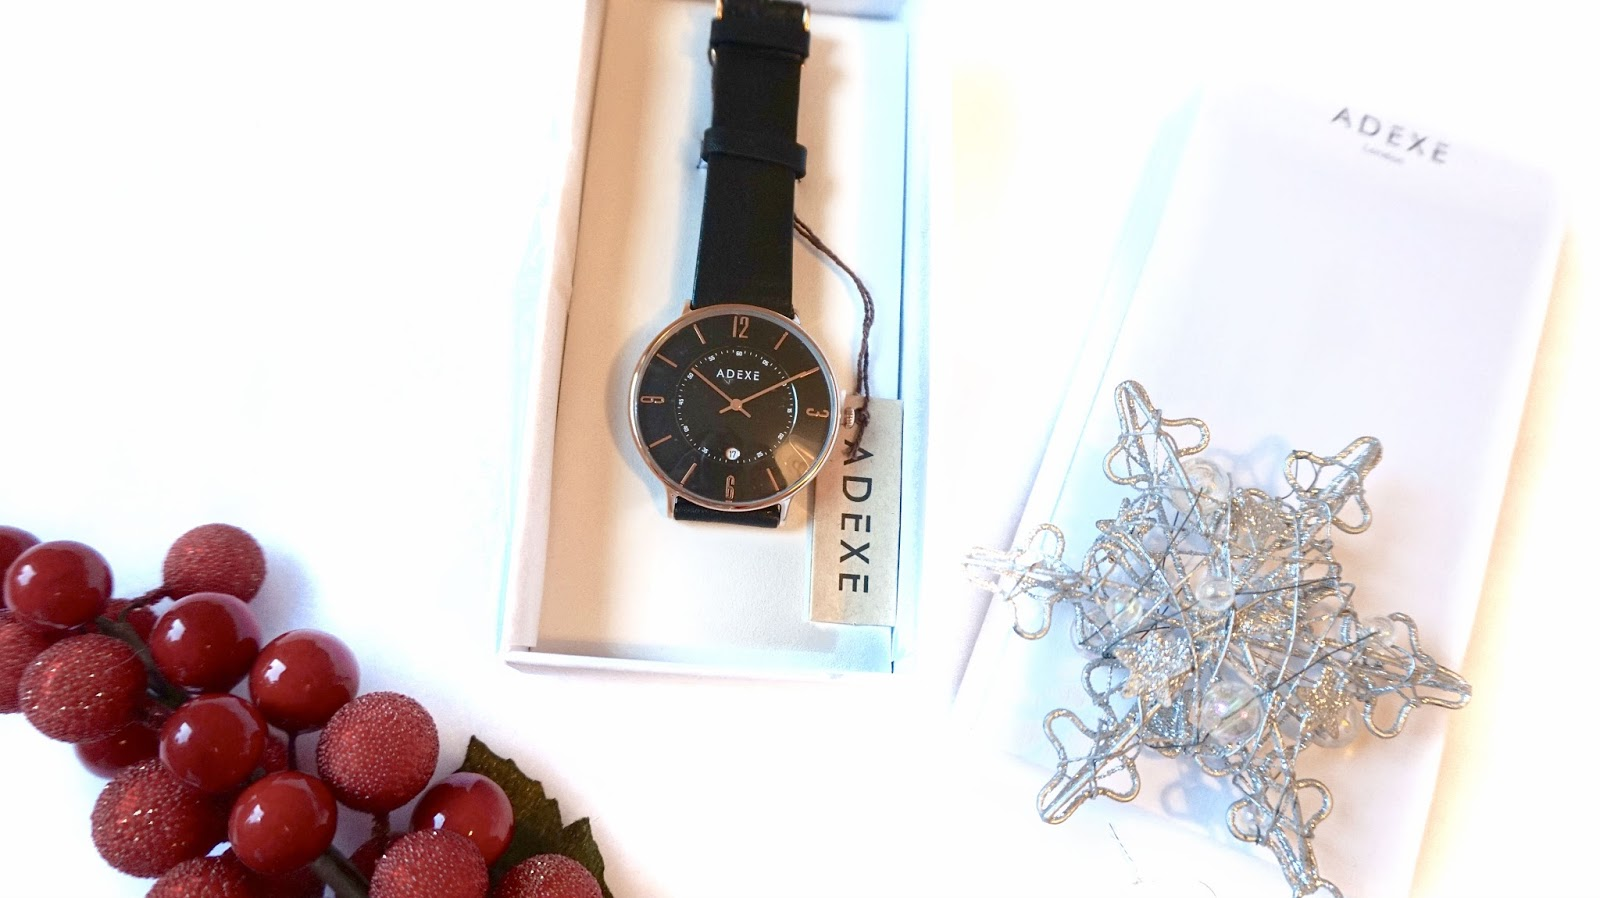 Adexe Watches Christmas gifts